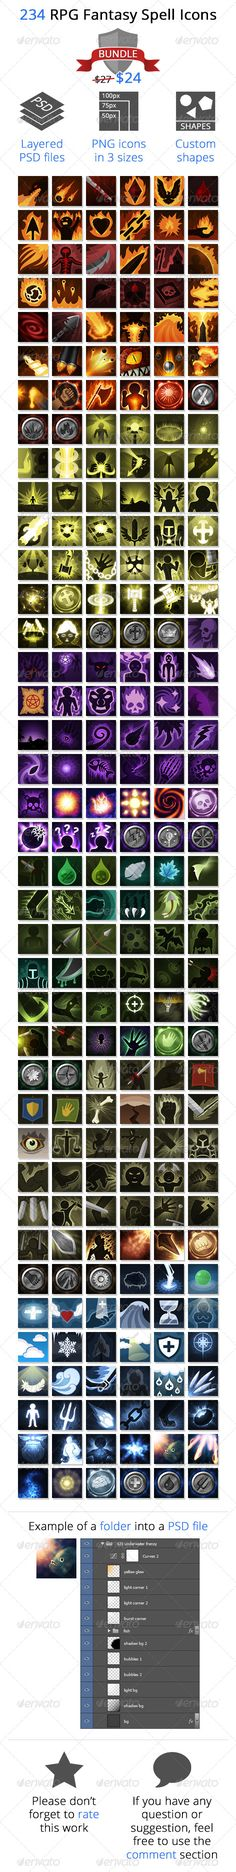 234 RPG Fantasy Spells Icons Bundle bundle, cast, characters, combat, elements…